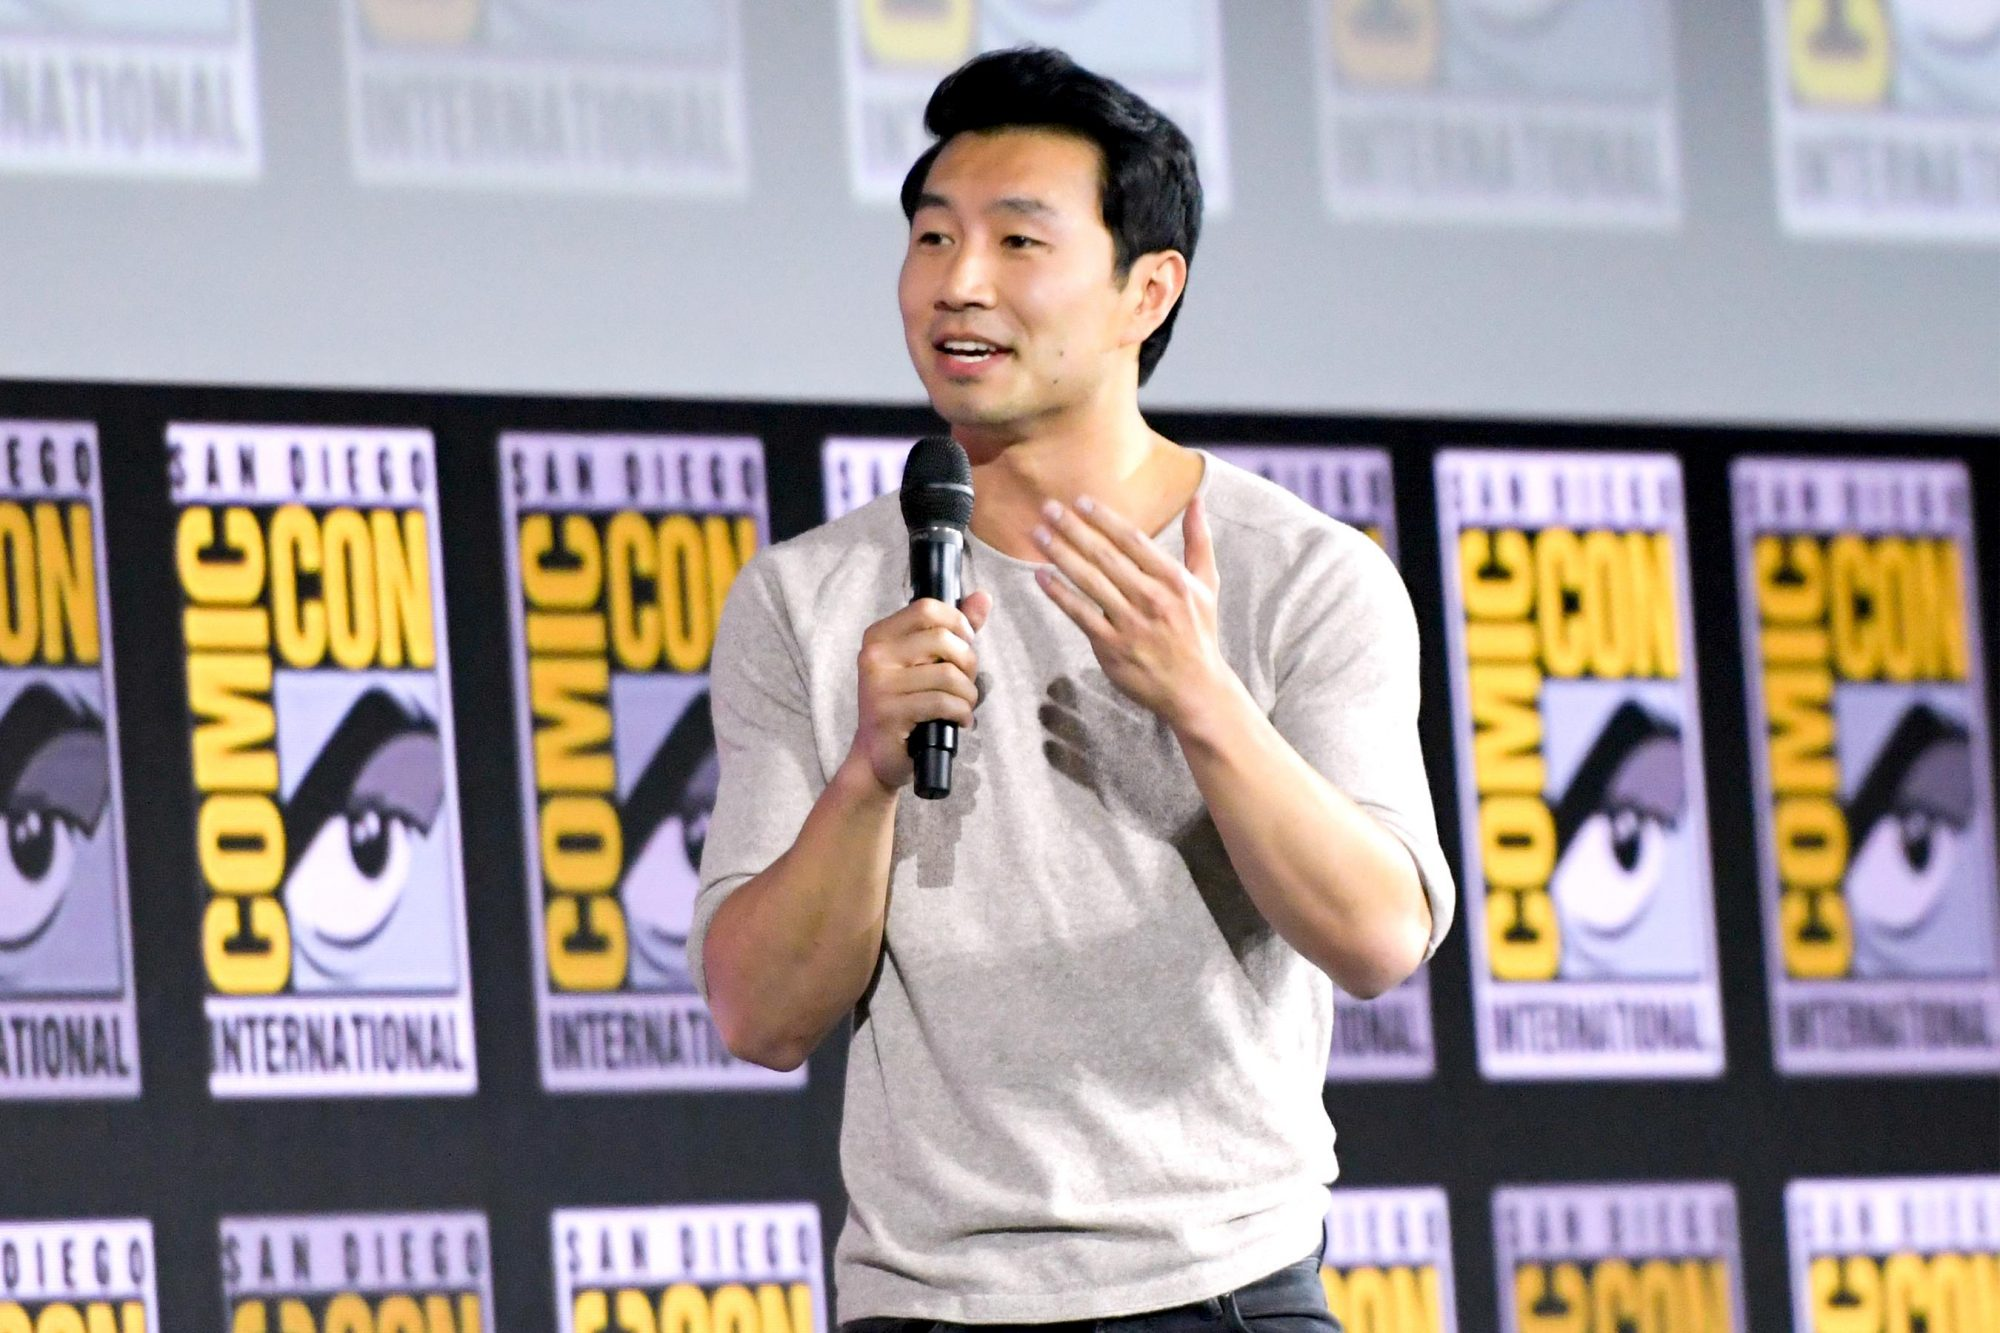 Canadian actor Simu Liu speaks on stage for the Marvel panel in Hall H of the Convention Center during Comic Con in San Diego, California on July 20, 2019. (Photo by Chris Delmas / AFP) (Photo credit should read CHRIS DELMAS/AFP/Getty Images)